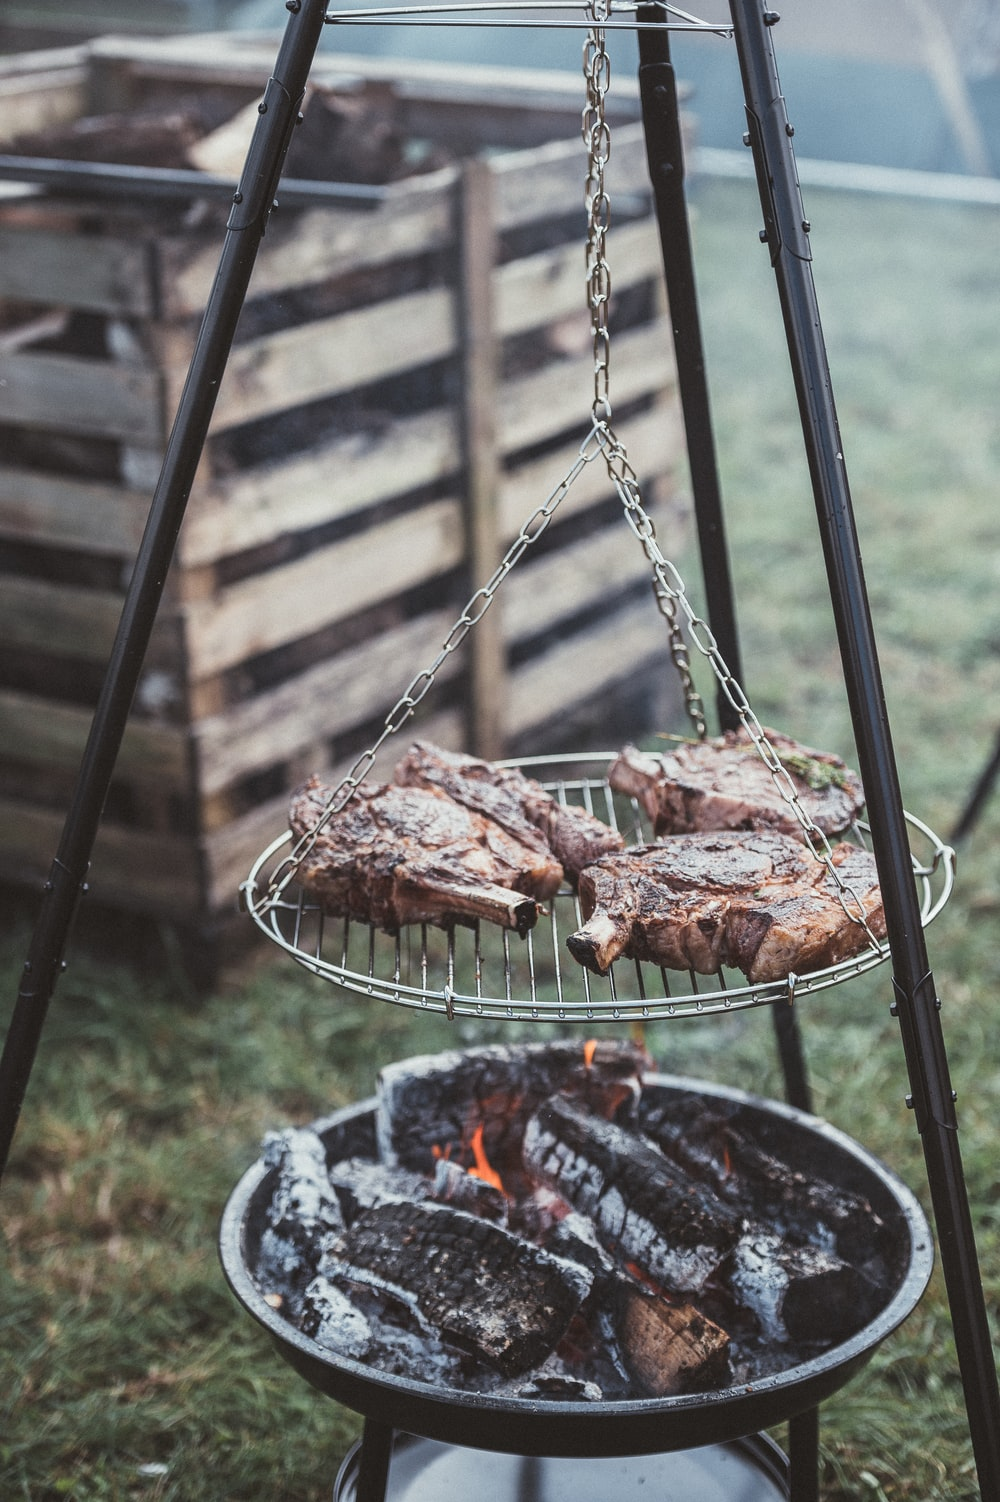 grilling meat during daytime